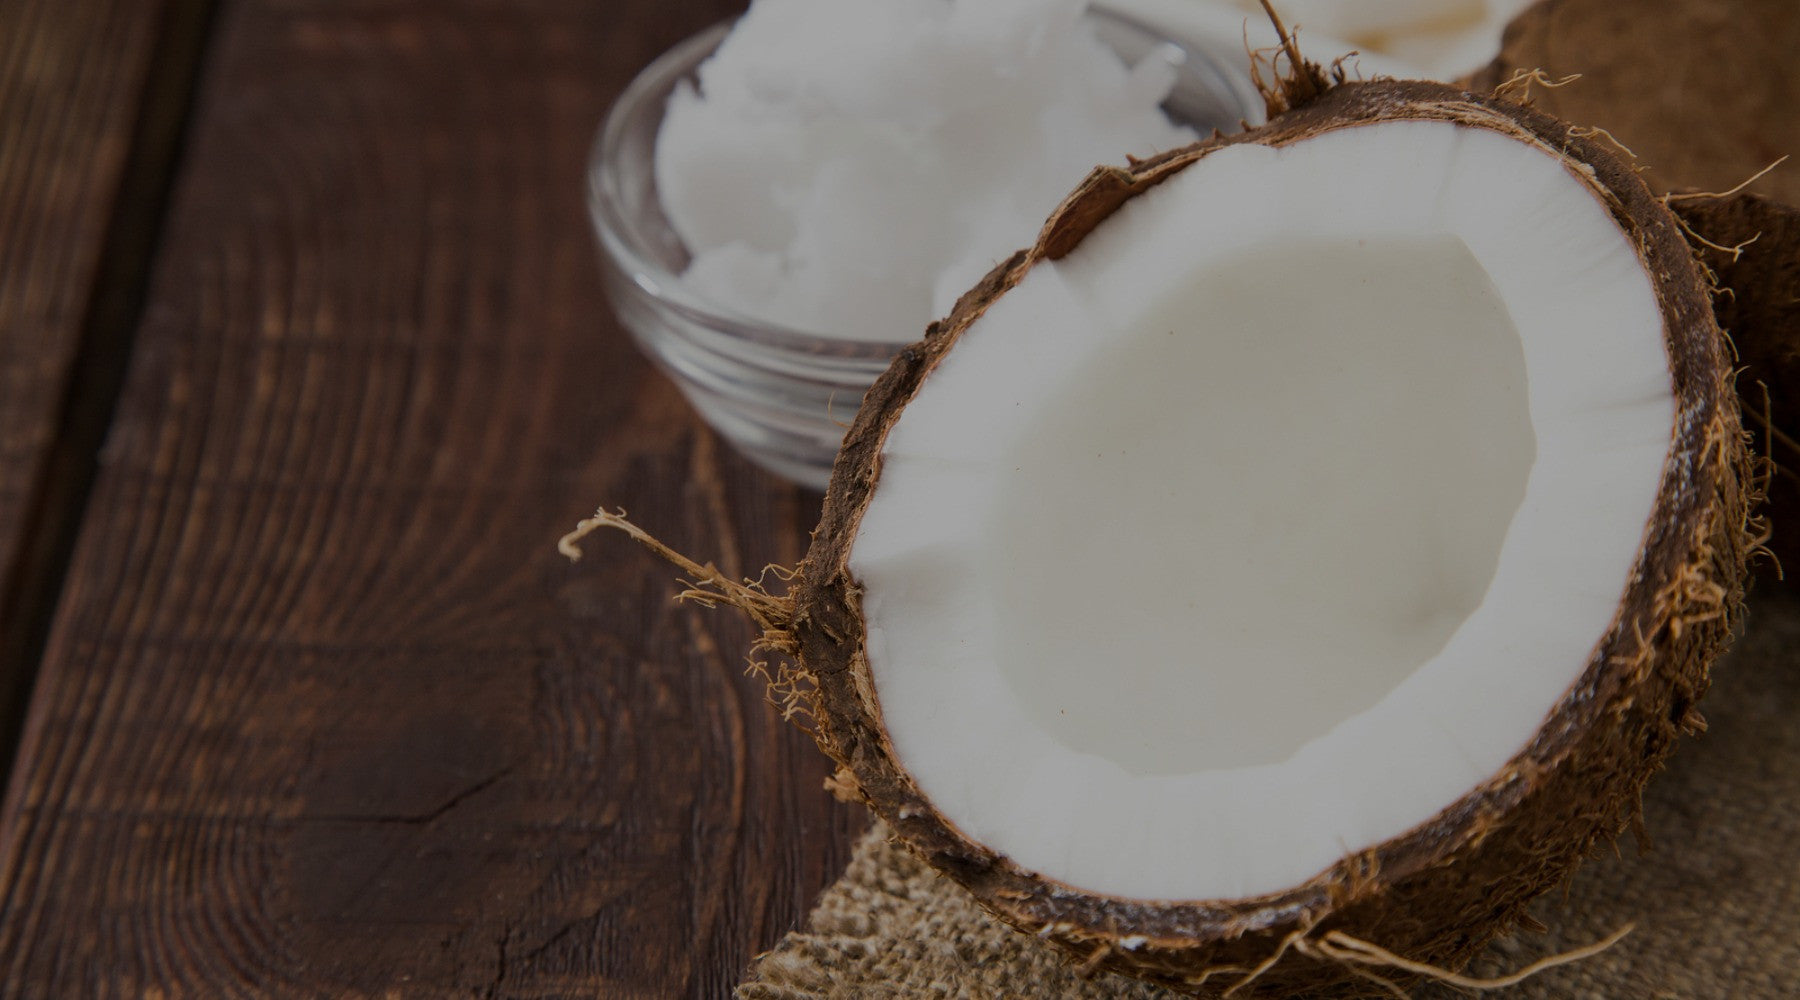 Coconut and coconut oil on a table